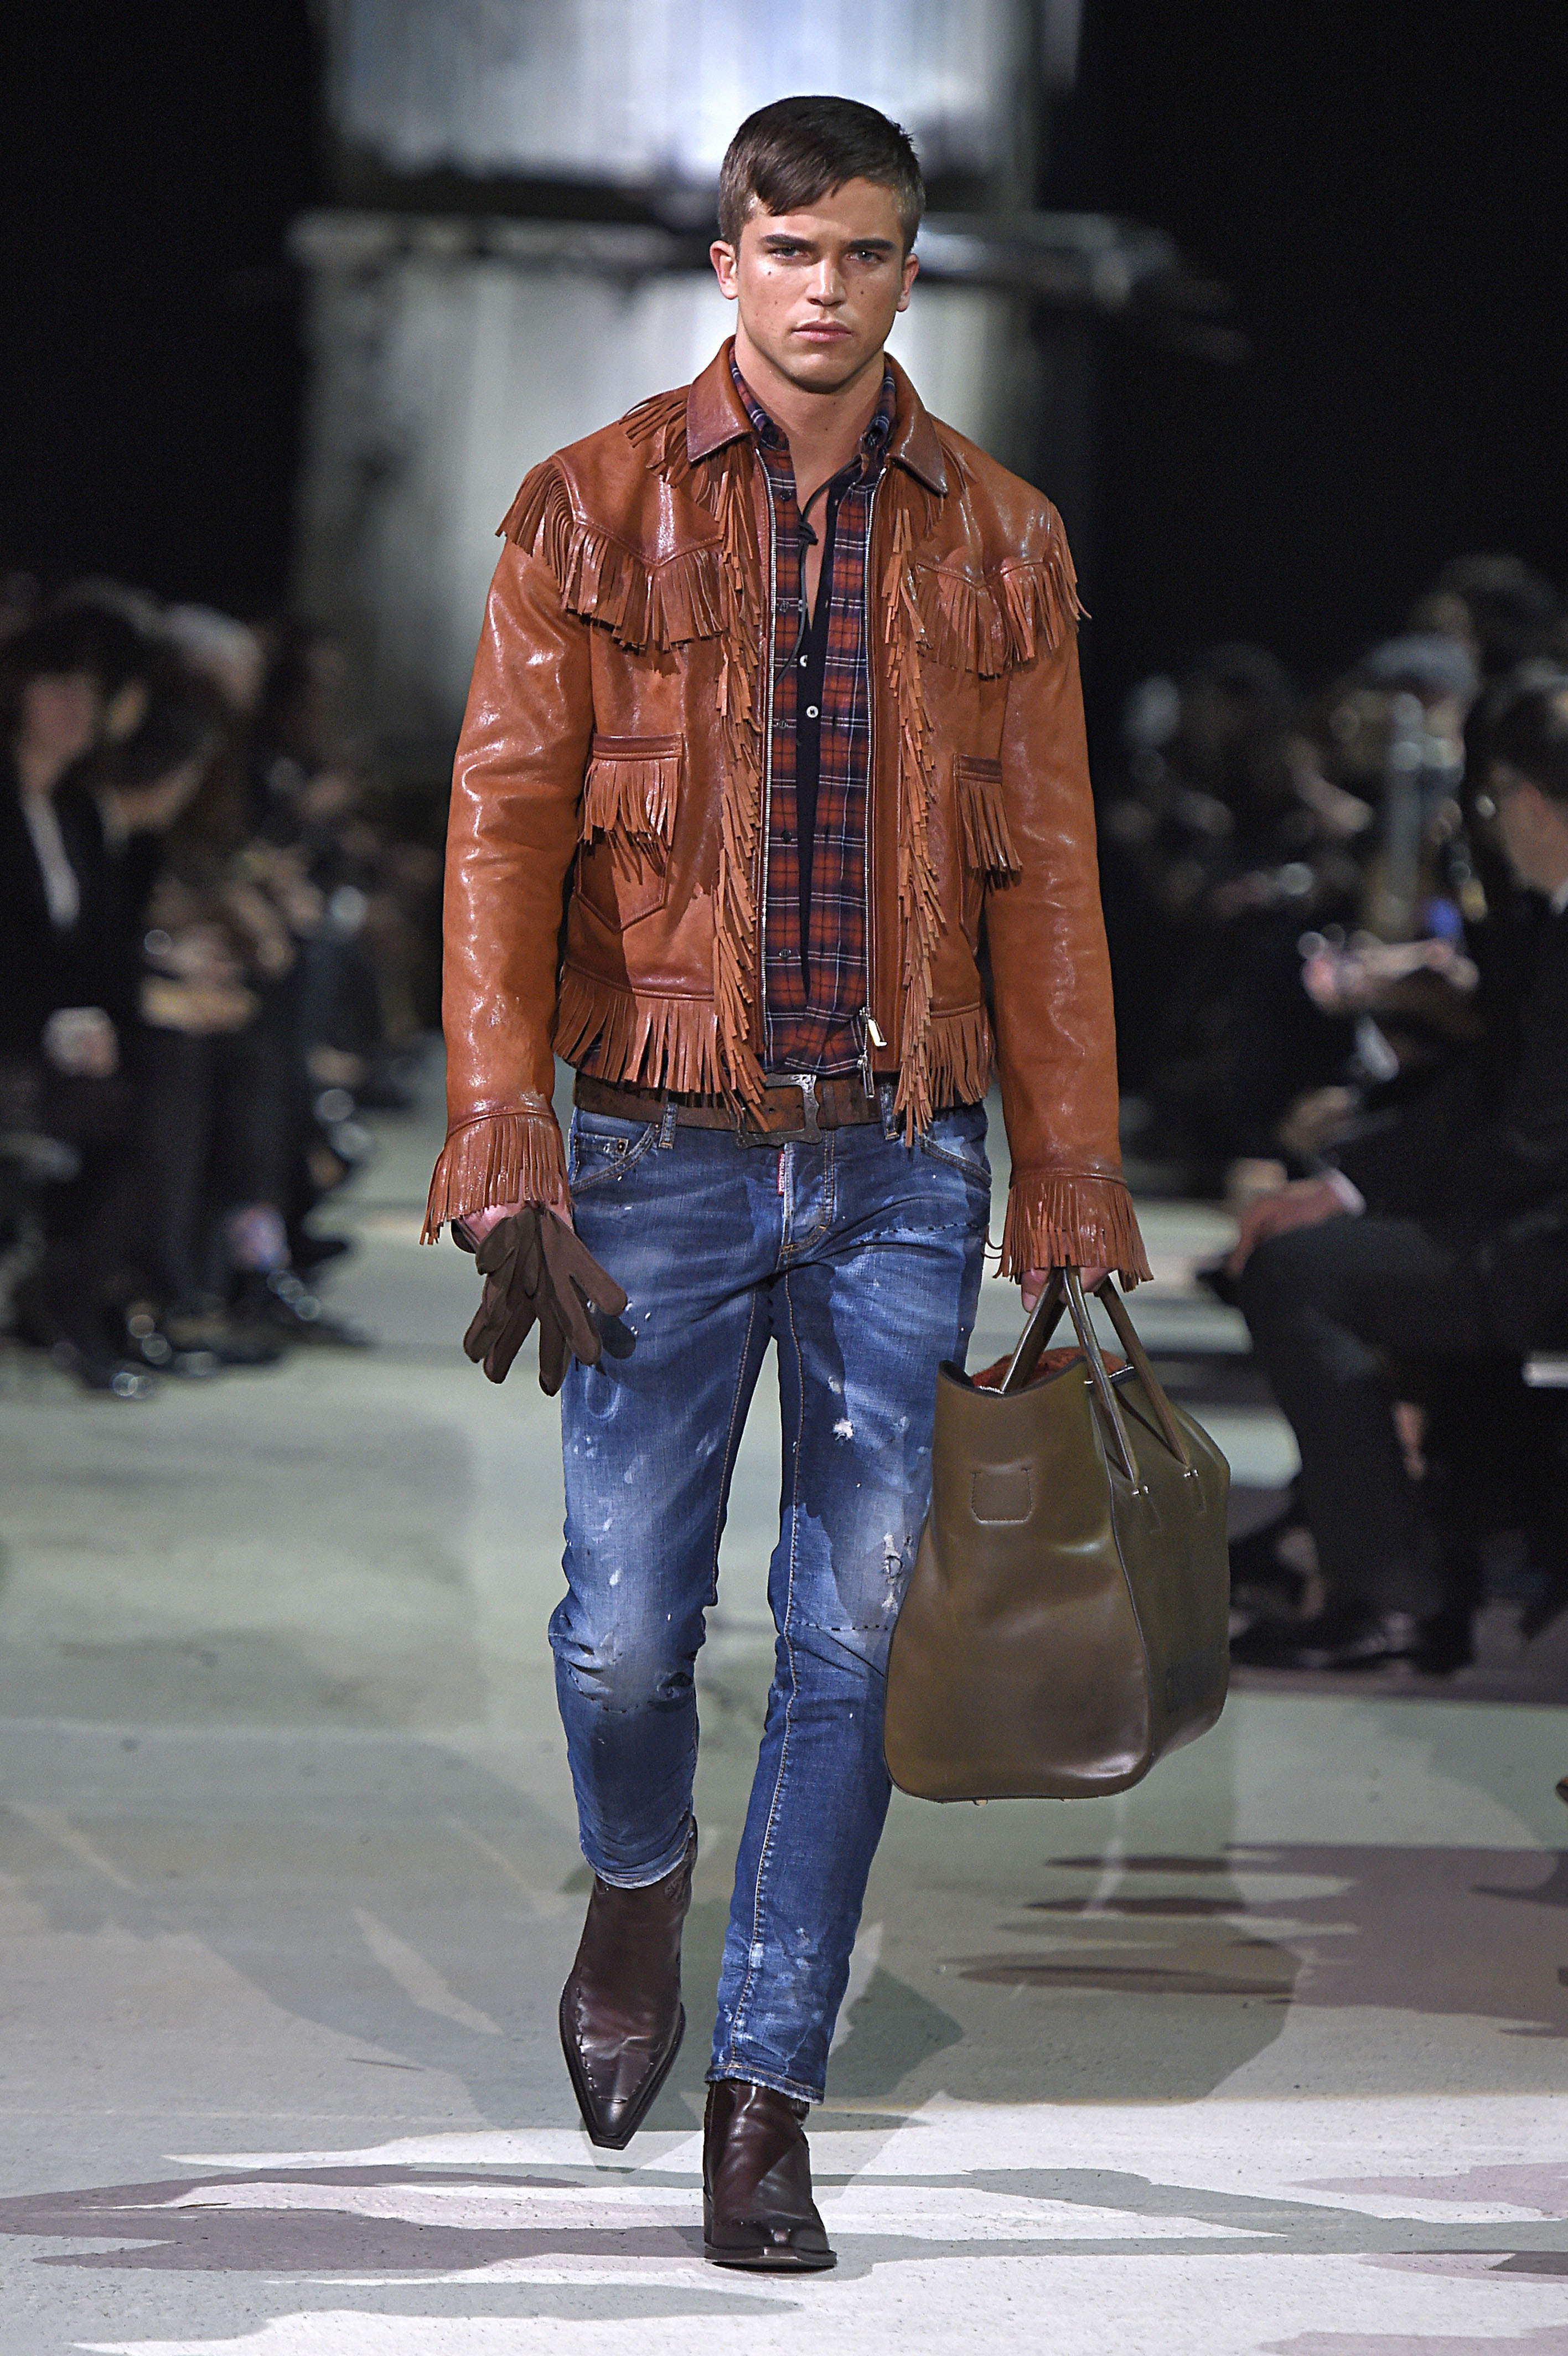 2015 Fall Winter 2016 Fashion Trends For Teens: DSQUARED2 FALL/WINTER 2015-2016